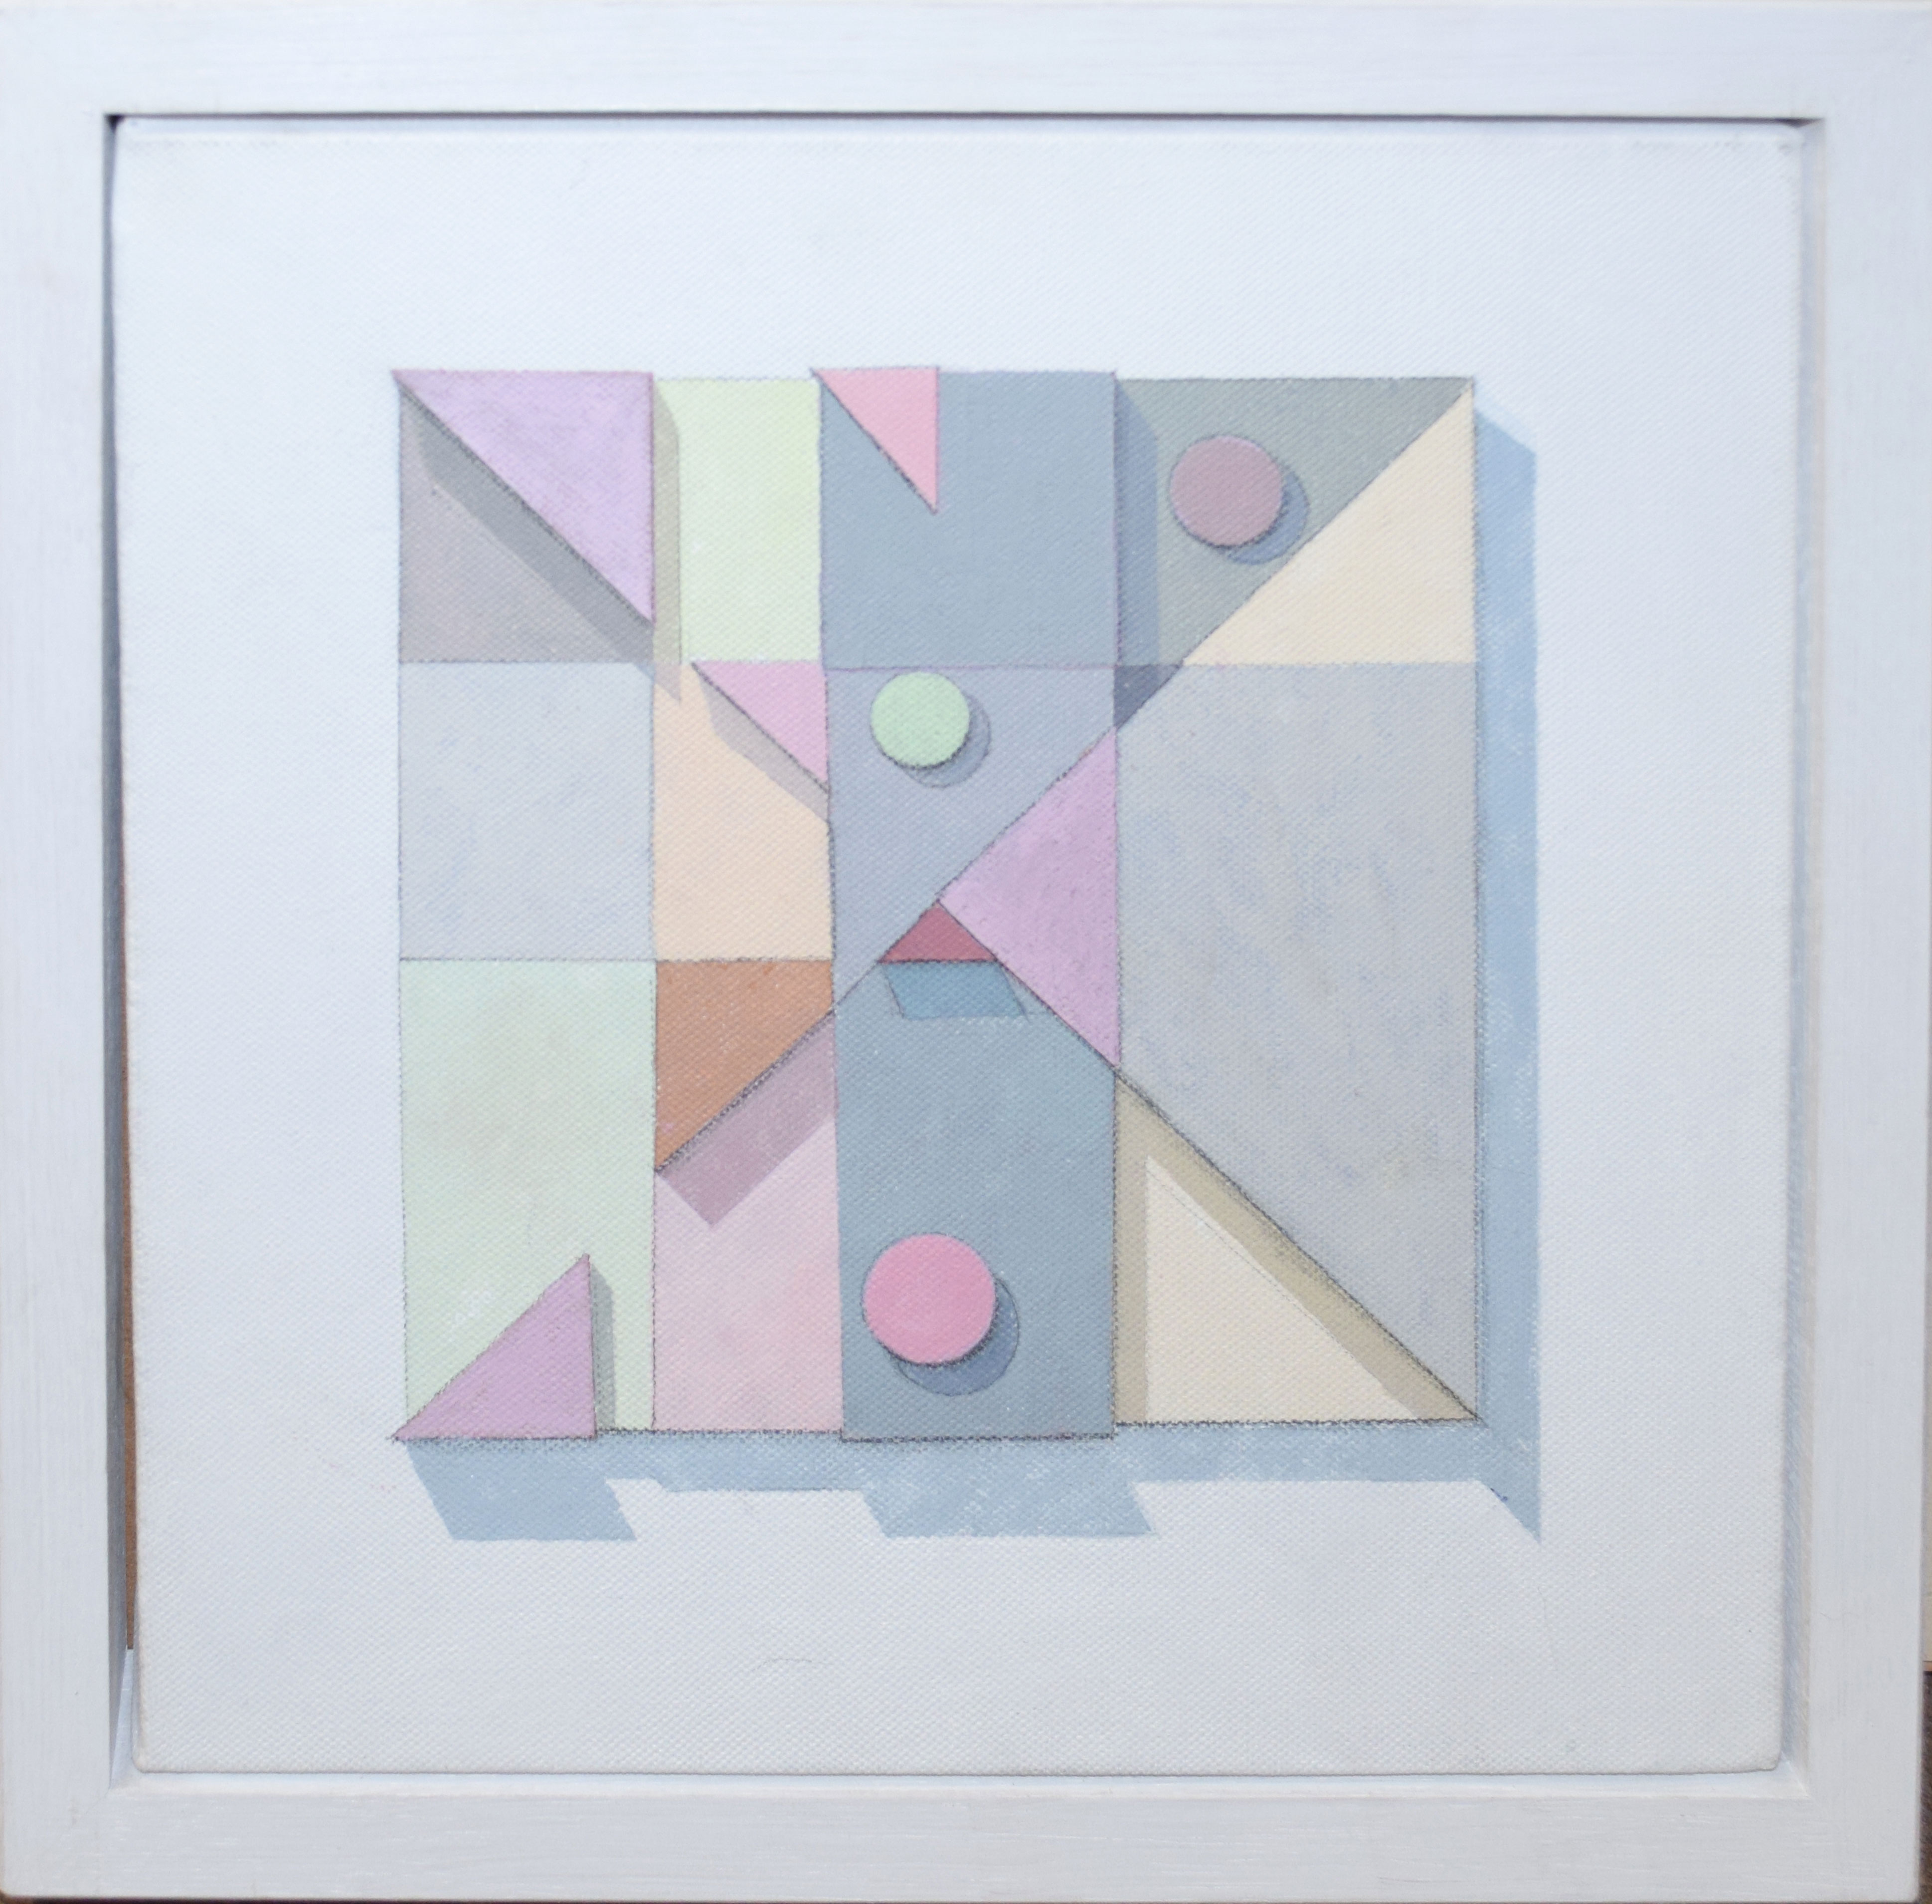 Mary Mellor, Abstract composition, oil on canvas, signed and dated 2011 verso, 30 x 30cm along